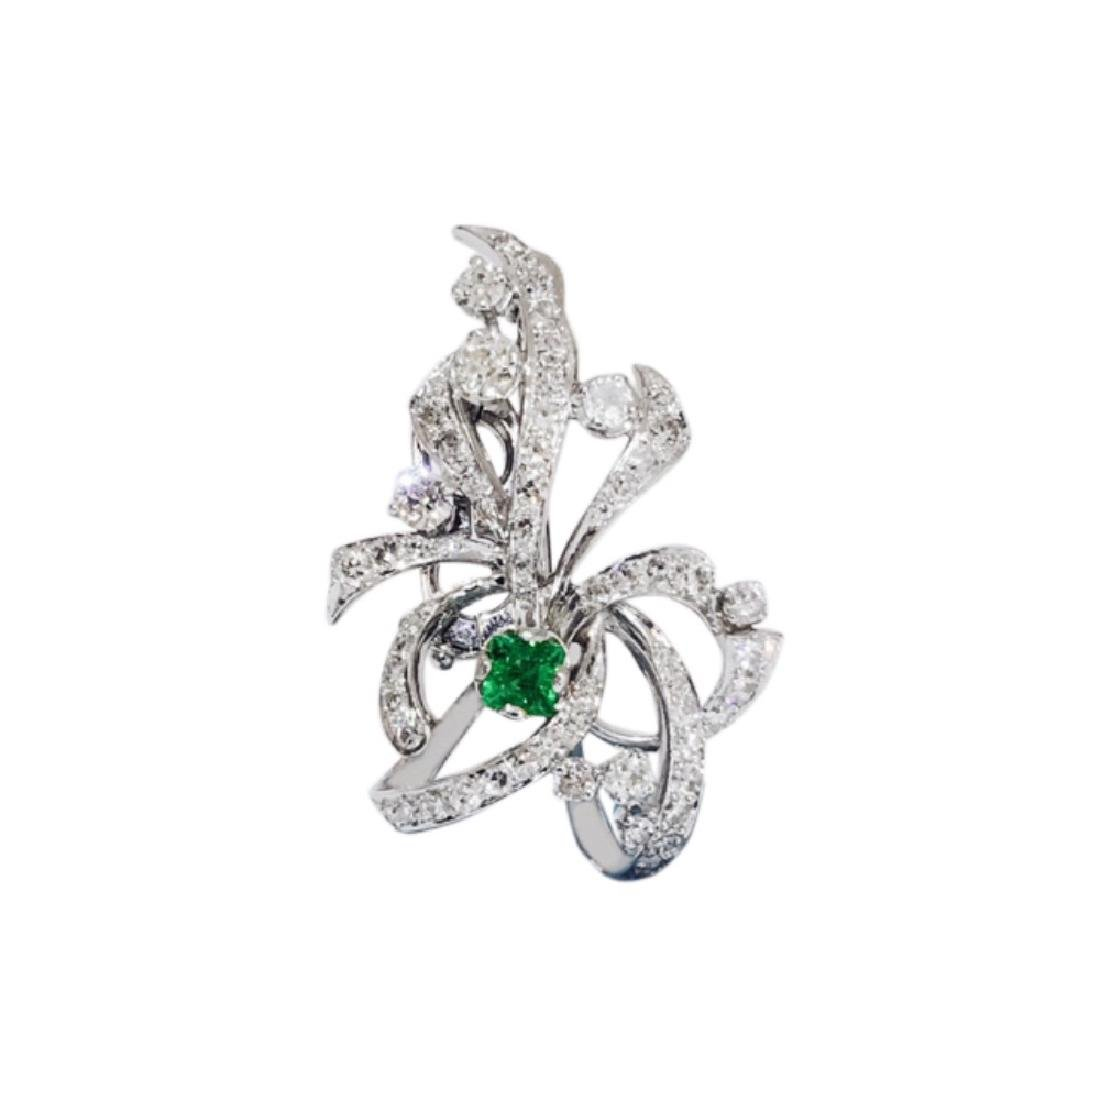 7.50 Carat VVS Diamond and Colombian Emerald Pin